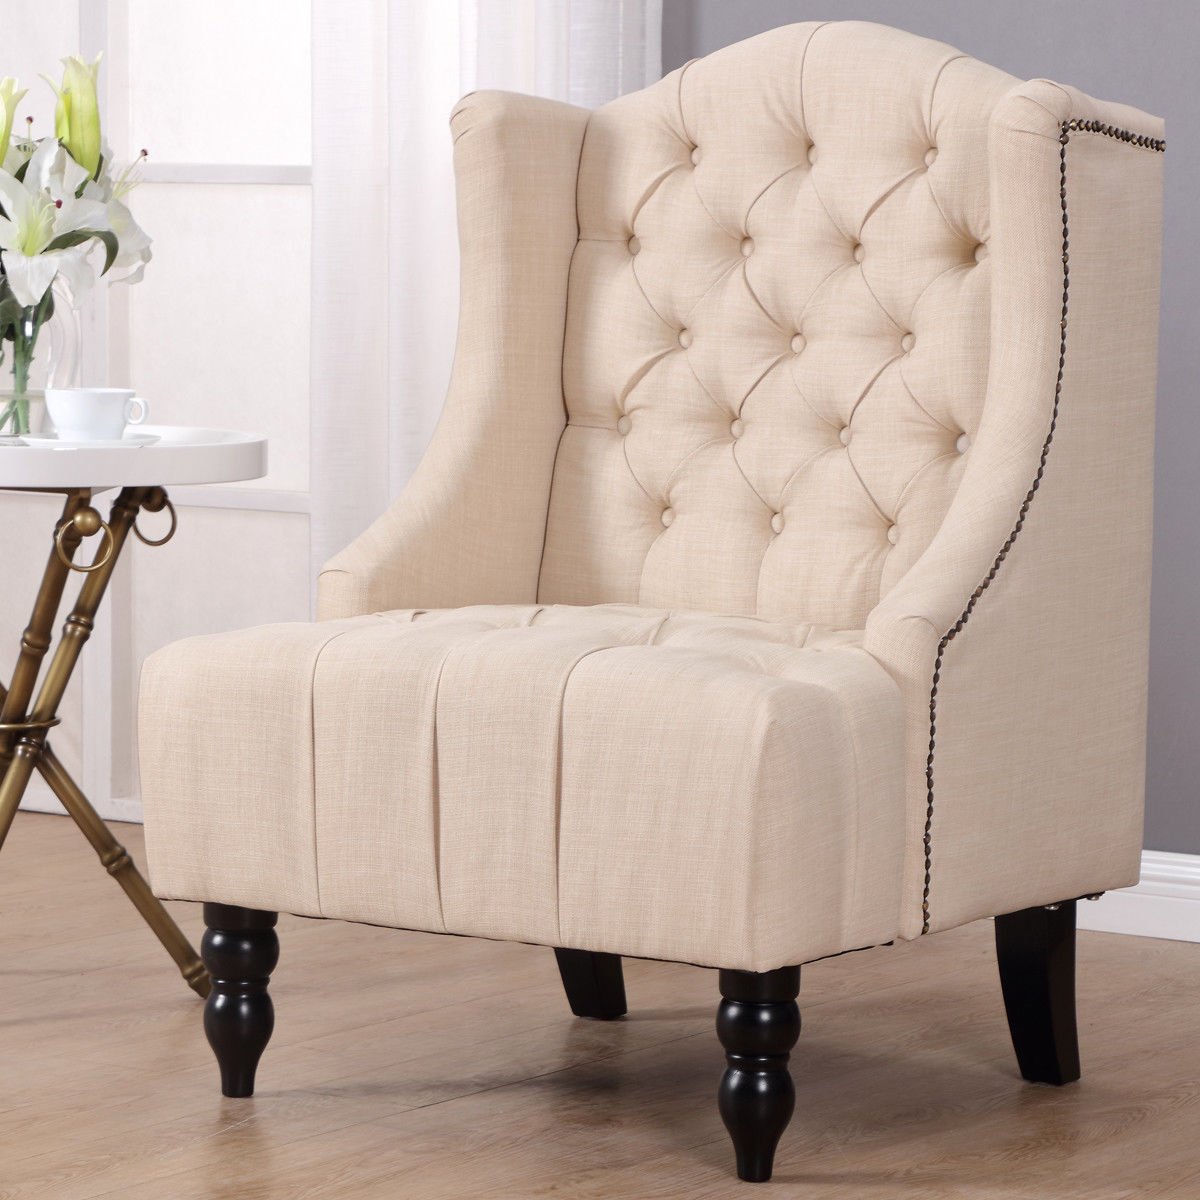 Costway Modern Tall Wingback Tufted Accent Armchair Fabric Vintage Chair Nailhead Beige